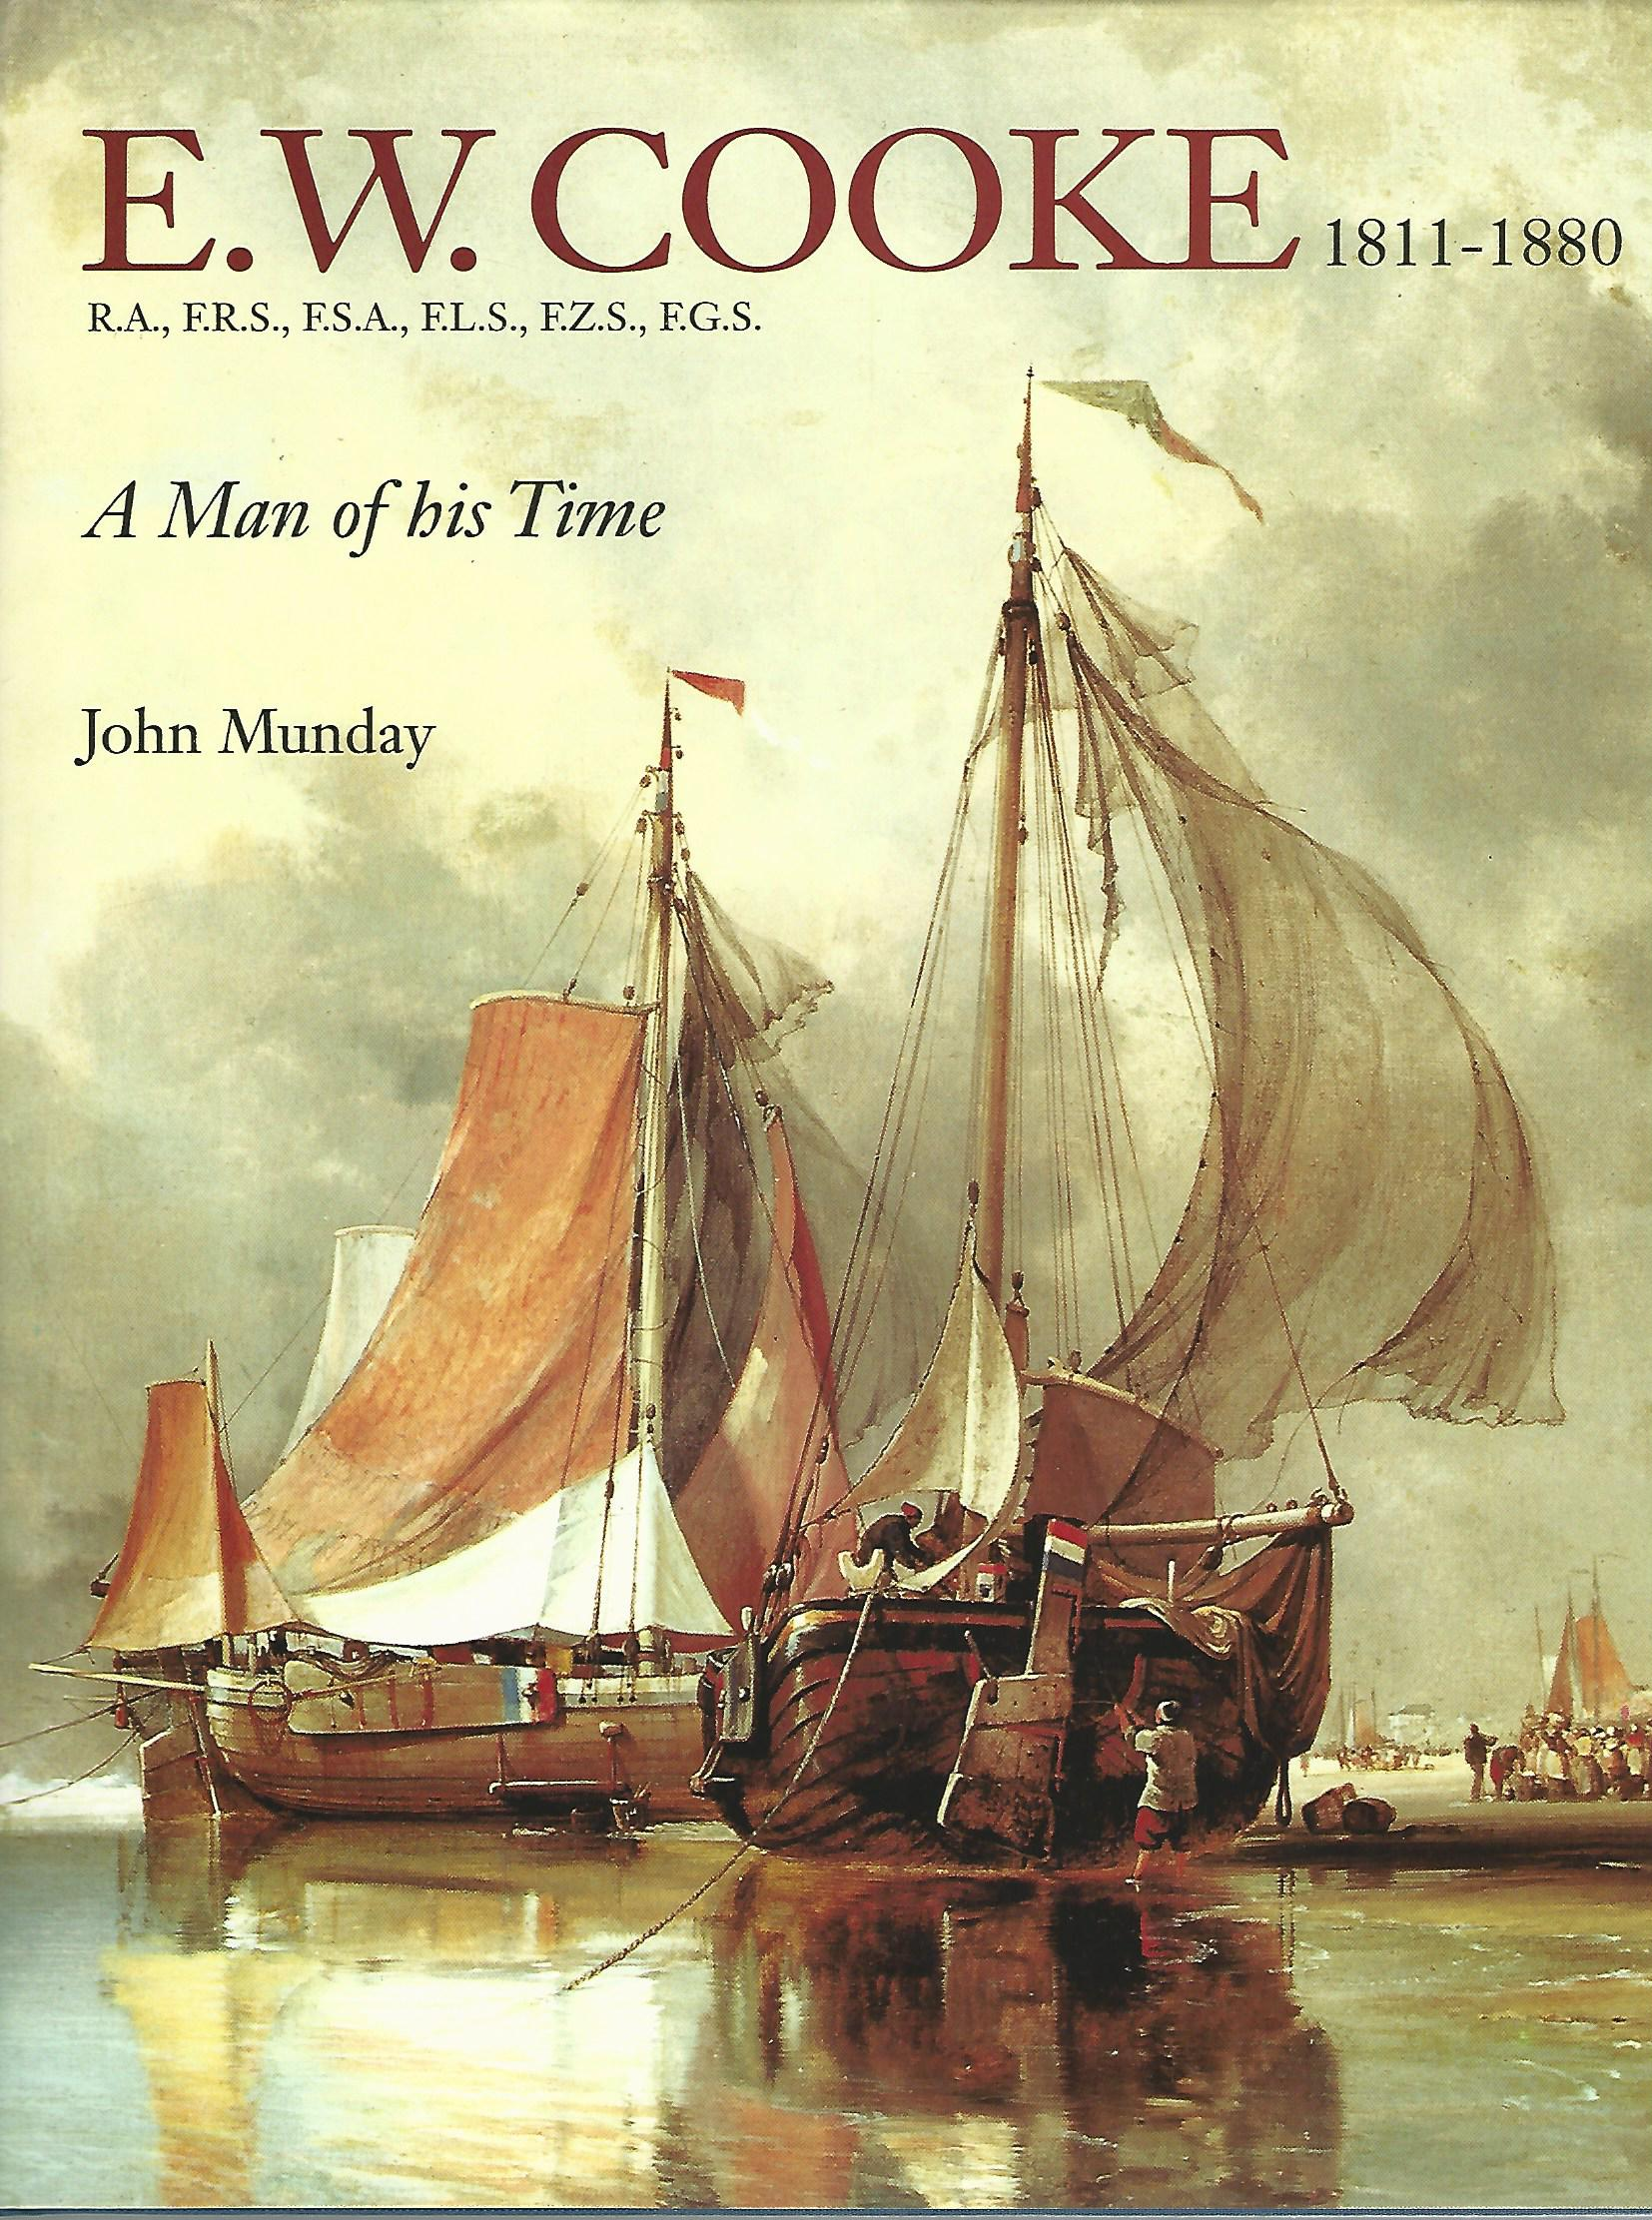 Image for E.W. Cooke, R.A., F.R.S. 1811-1880: A Man of his Time.